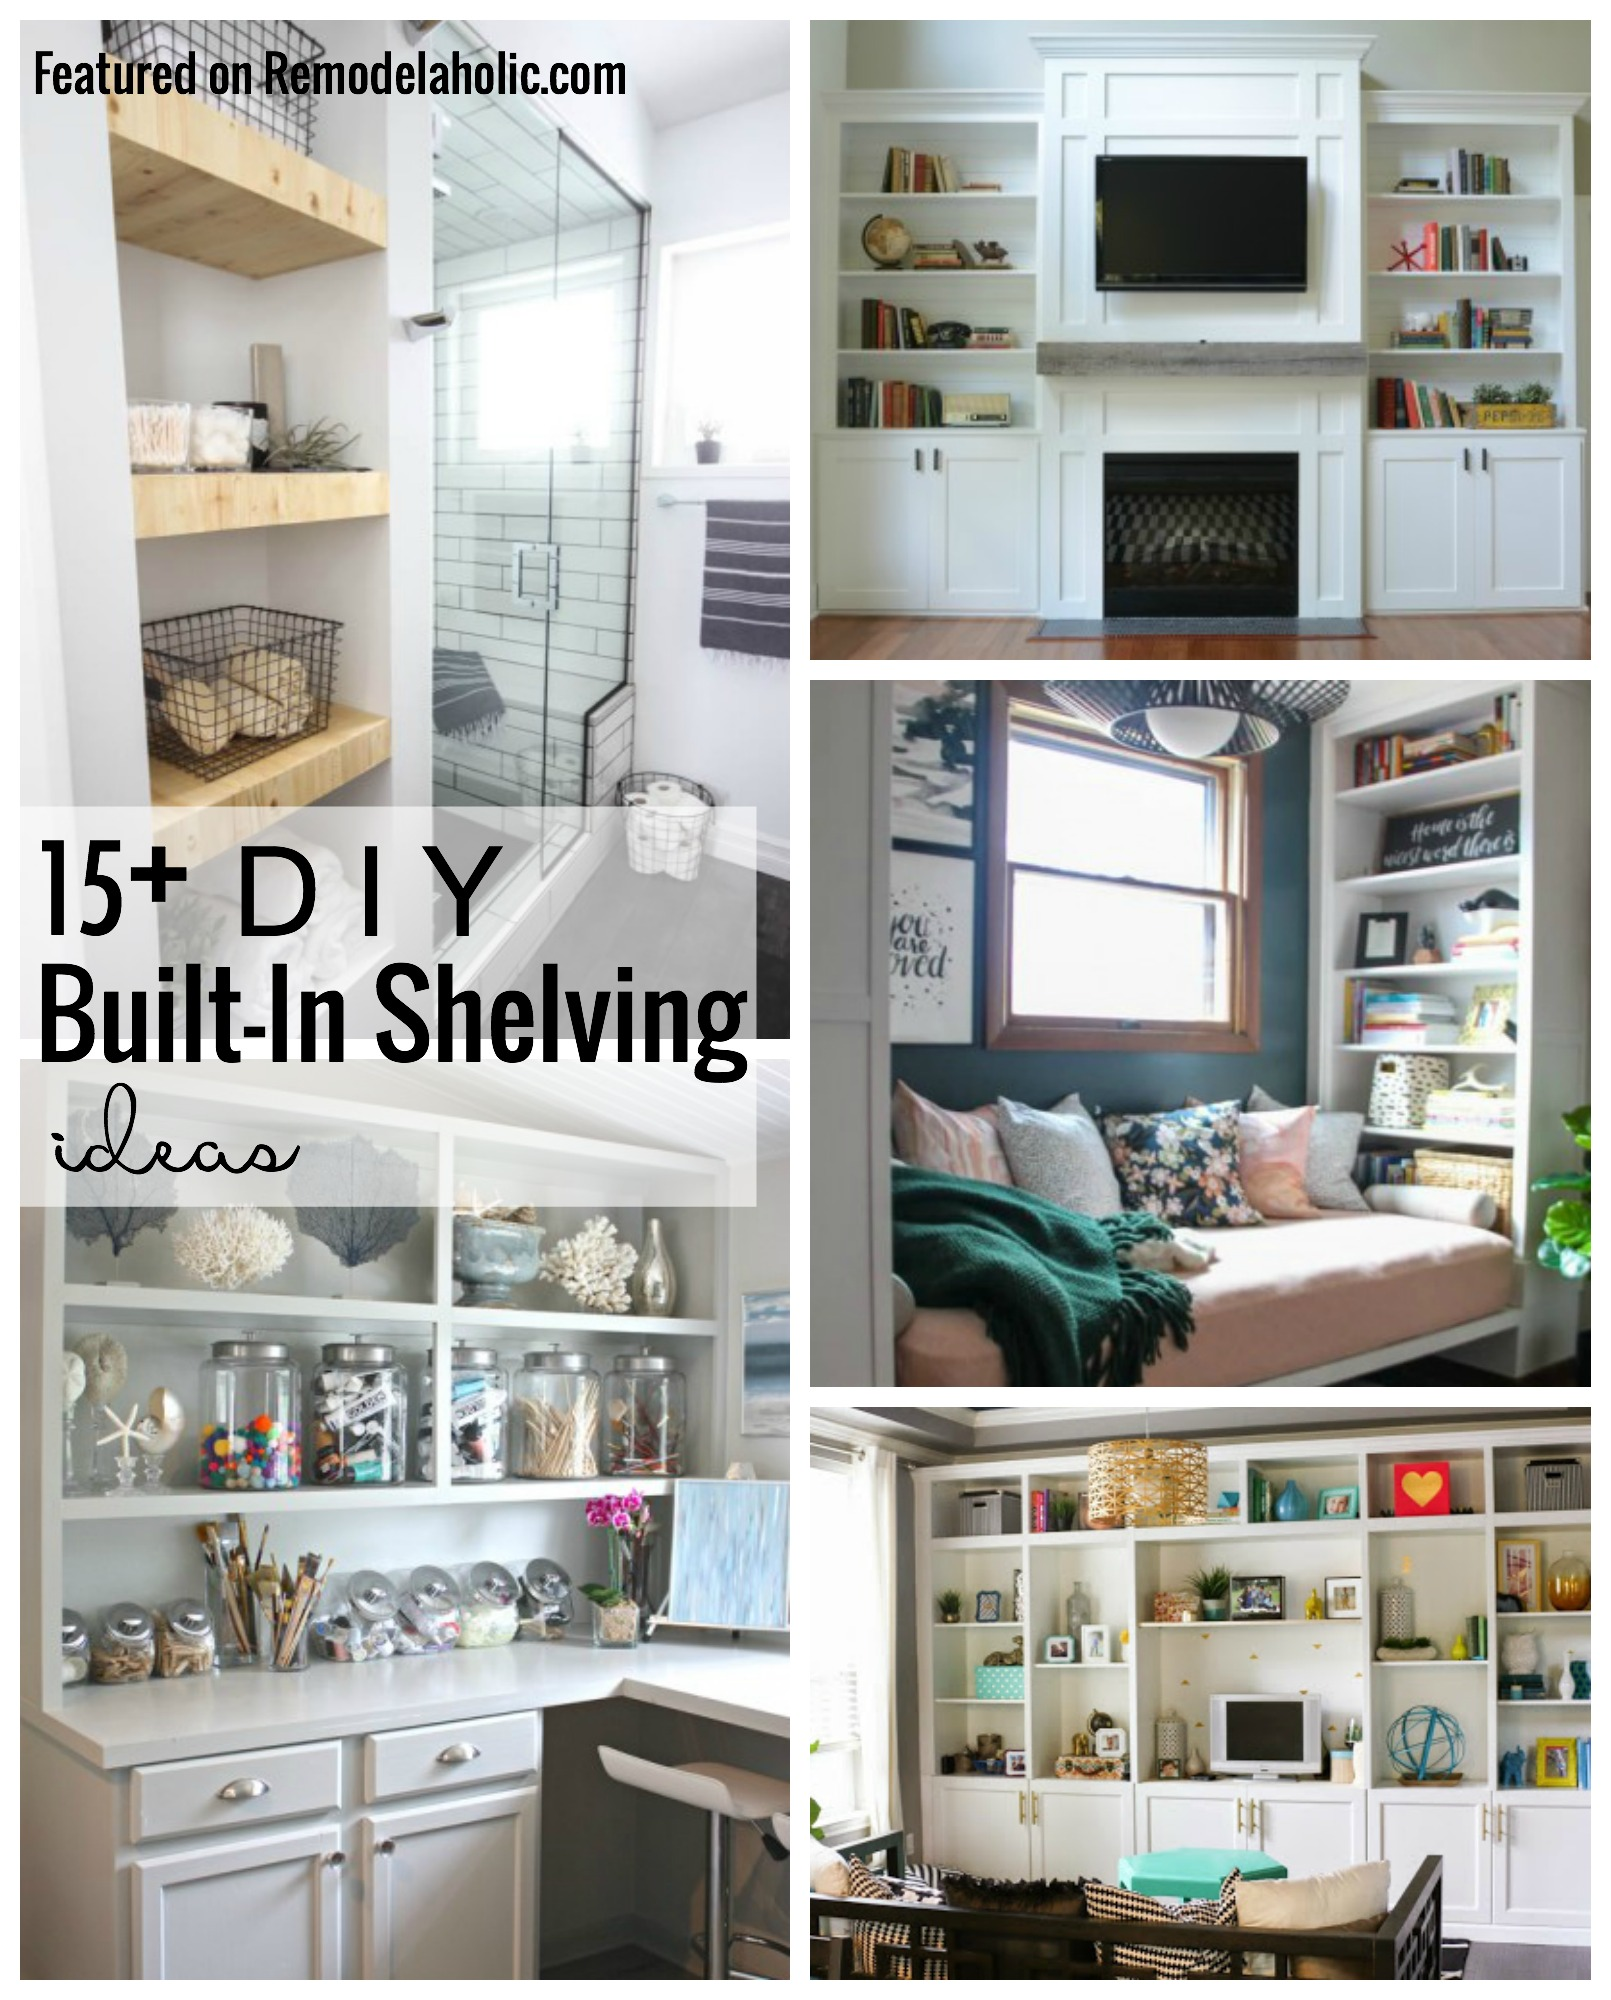 Get The Built In Looks Of Your Dreams On A Budget With These 15+